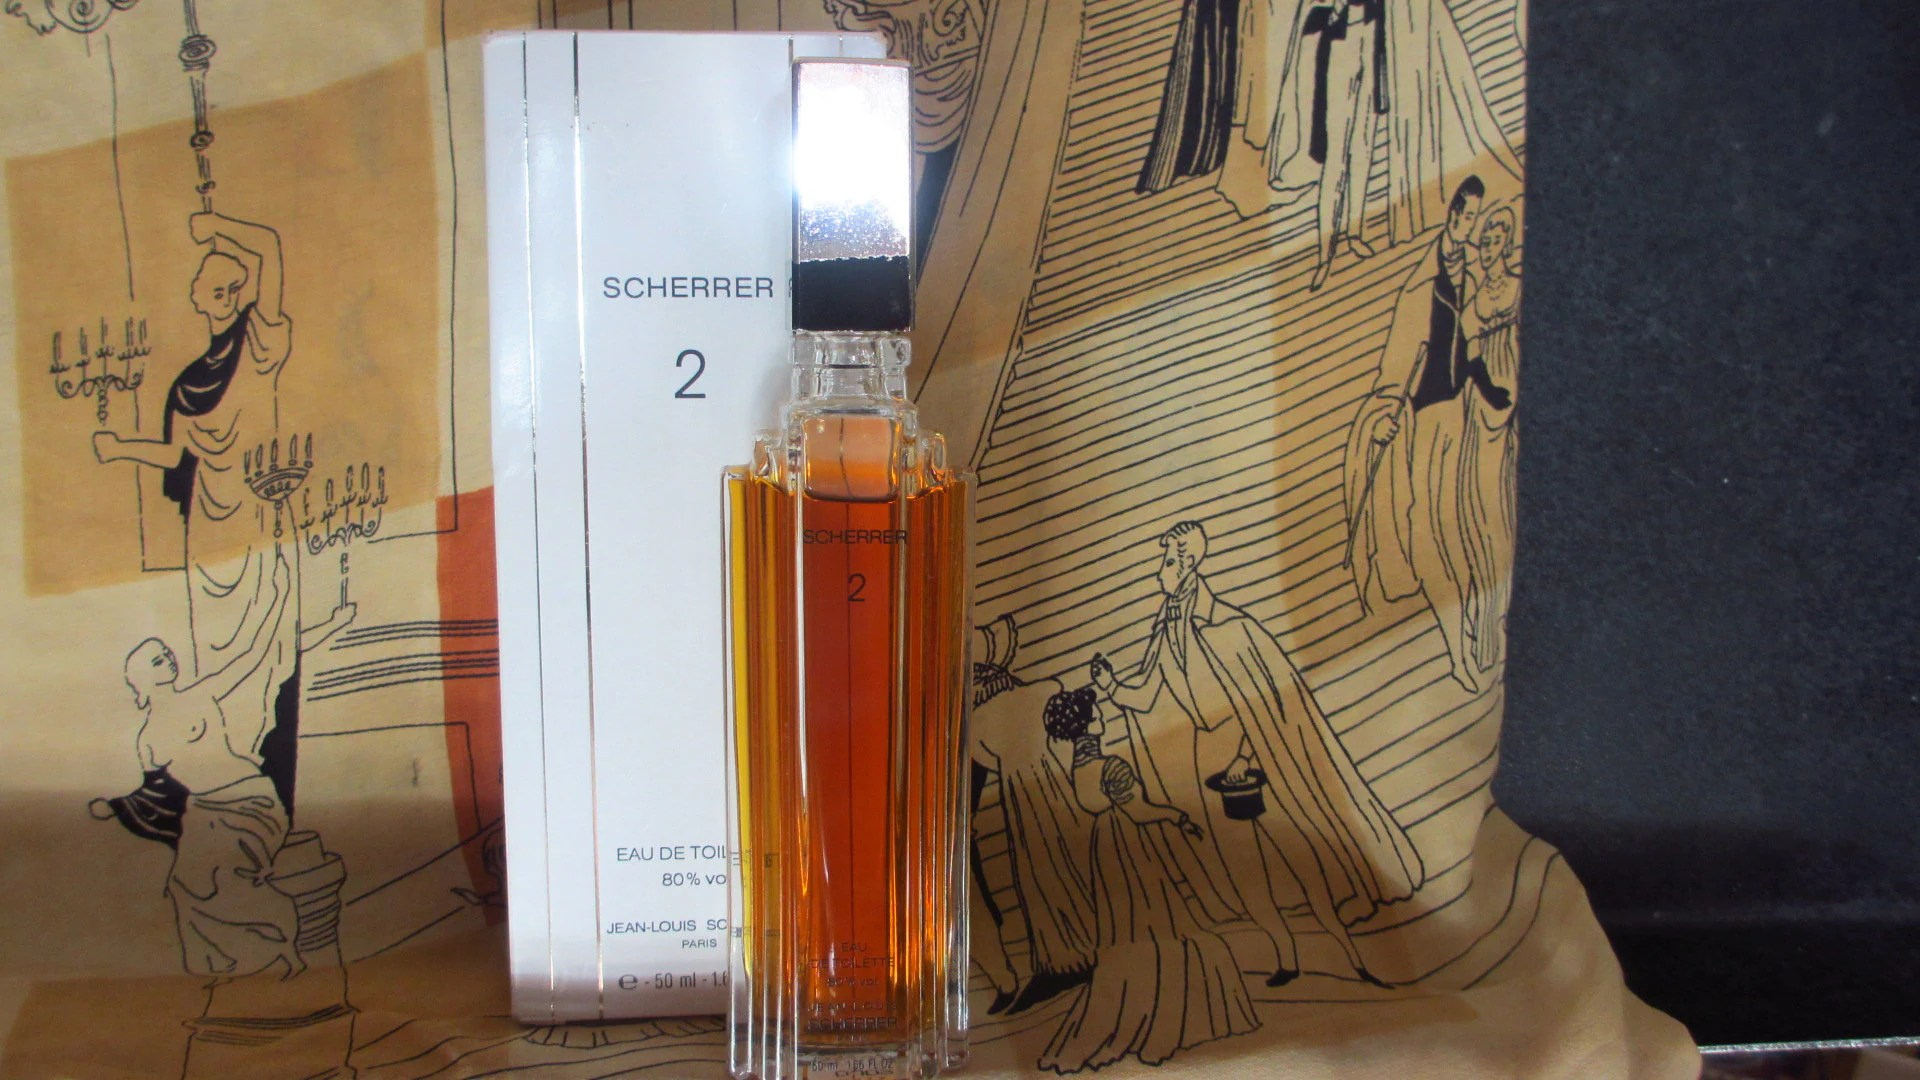 Toilette Deco Original Vintage French Perfume Scherrer 2 Eau De Toilette By Jean Louis Scherrer In Original Box Free Shipping